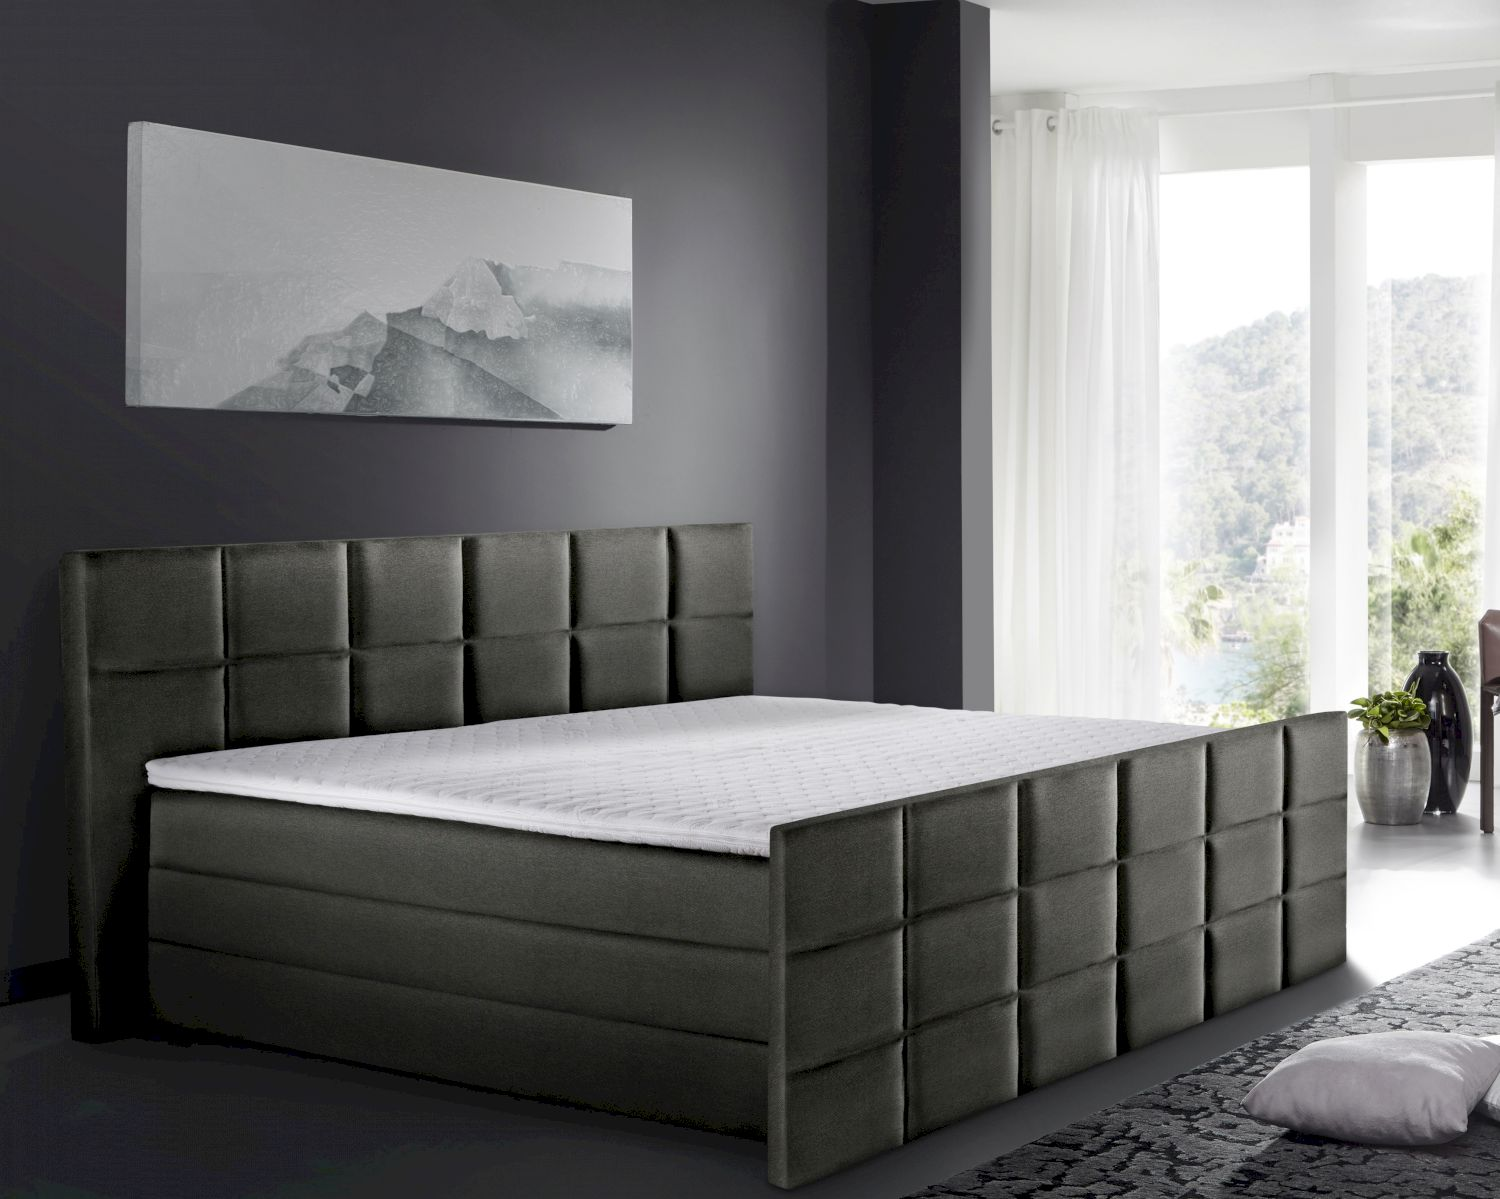 winkle boxspringbett atia mit bettkasten. Black Bedroom Furniture Sets. Home Design Ideas